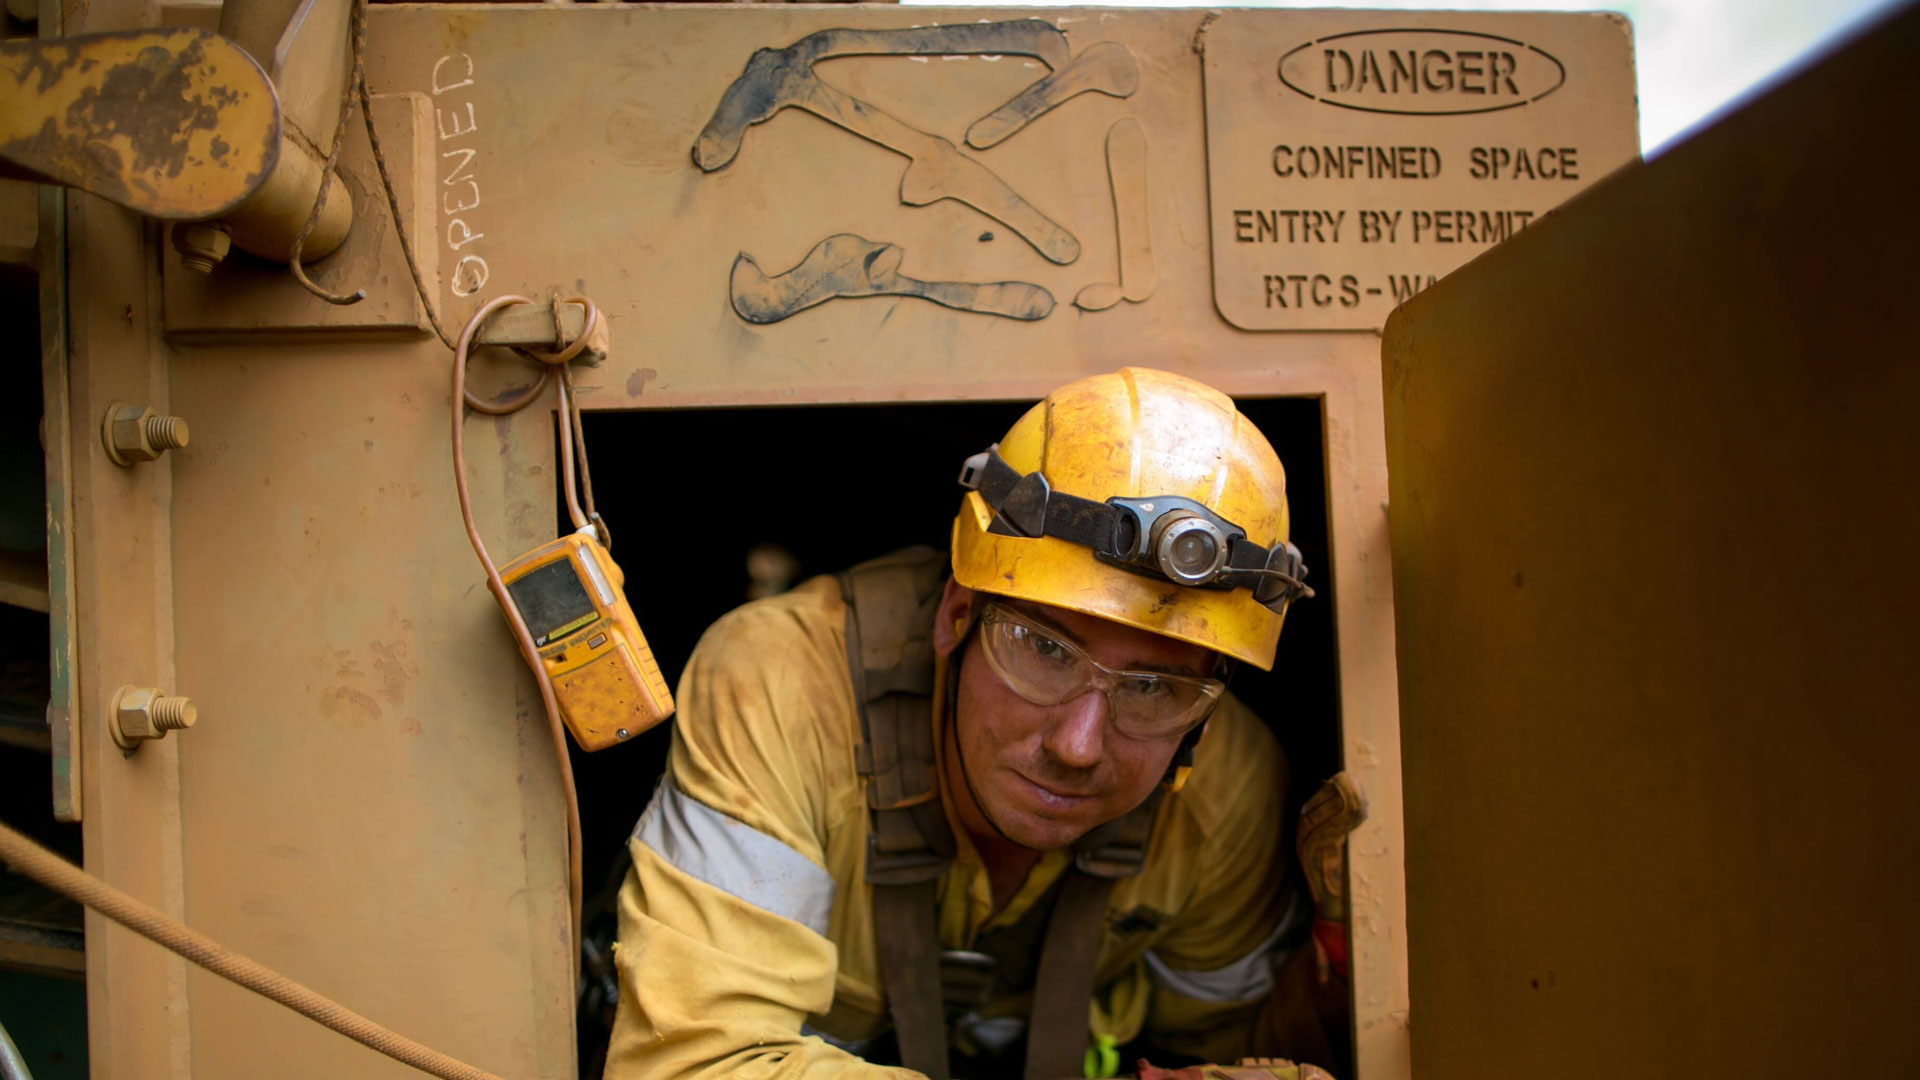 RIIWHS202D Enter and work in confined spaces